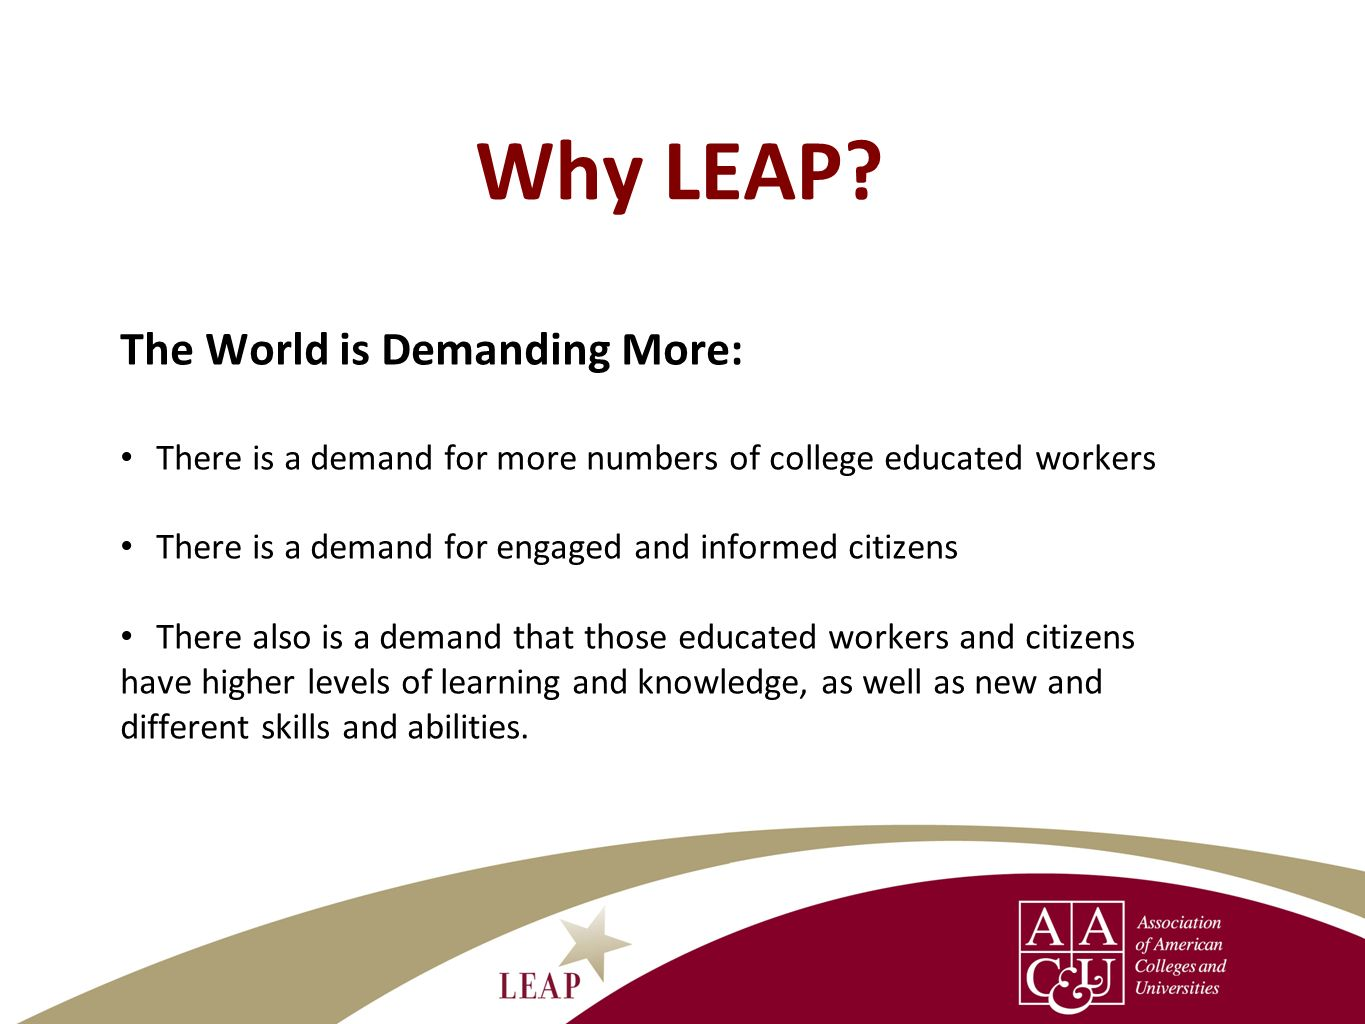 For more information, visit www.aacu.org/LEAP or contact: Bethany Zecher Sutton, Coordinating Director sutton@aacu.org To join the LEAP Campus Action Network, visit www.aacu.org/leap/can/join.cfmwww.aacu.org/LEAP sutton@aacu.org www.aacu.org/leap/can/join.cfm